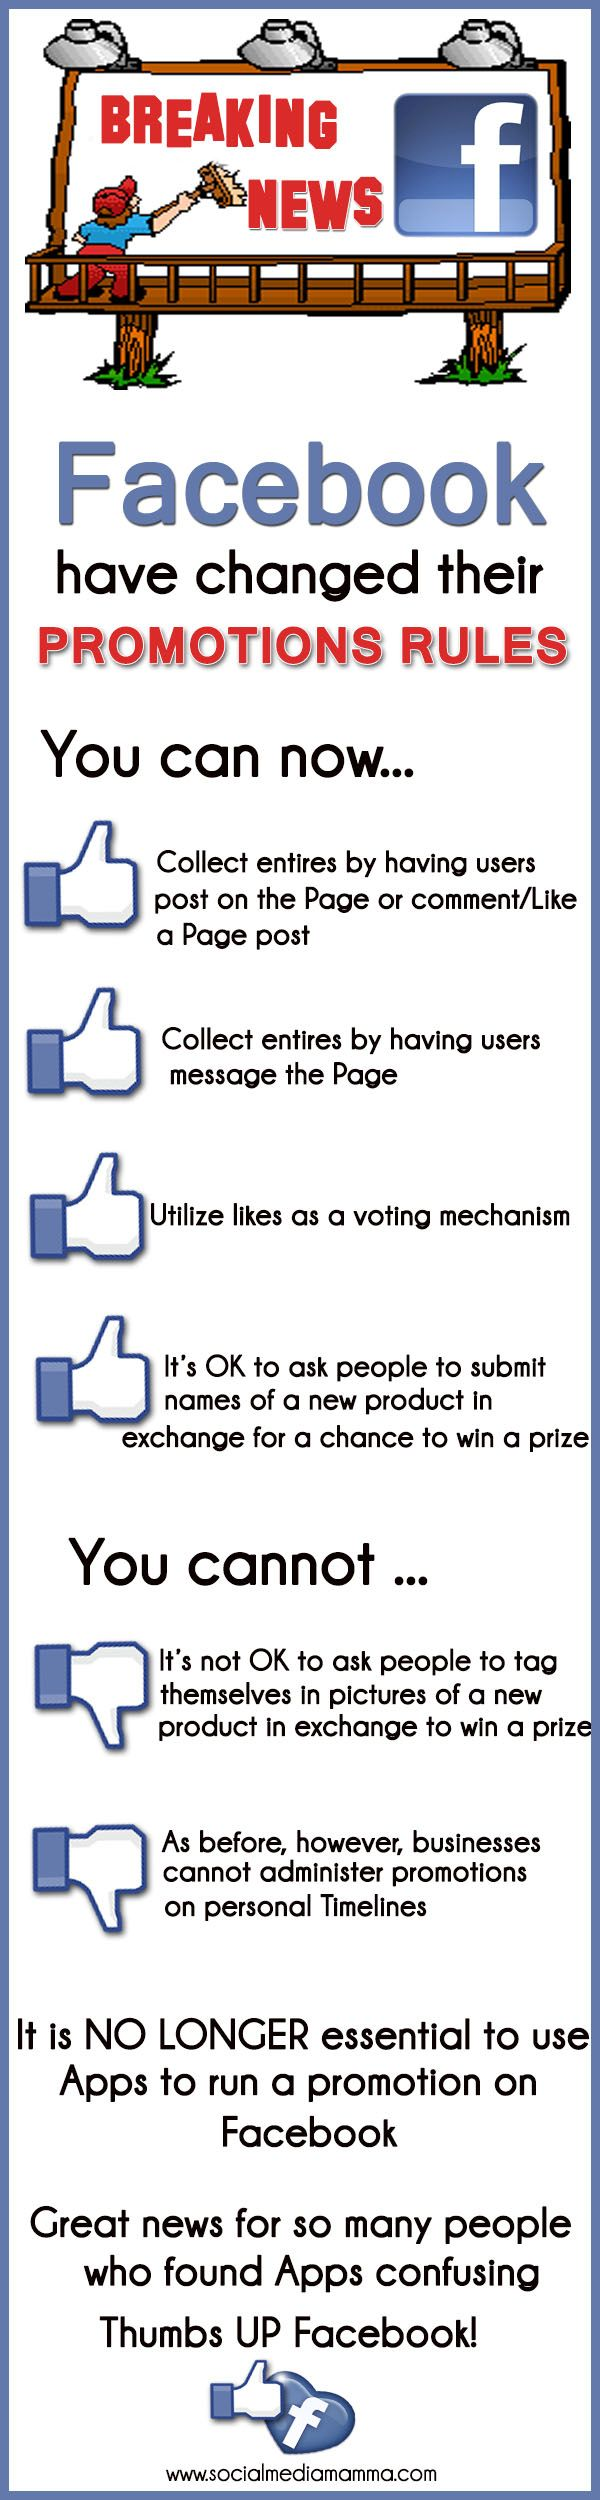 Facebook new rules for promotions contests #infographic Gaynor Parke www.socialmediamamma.com